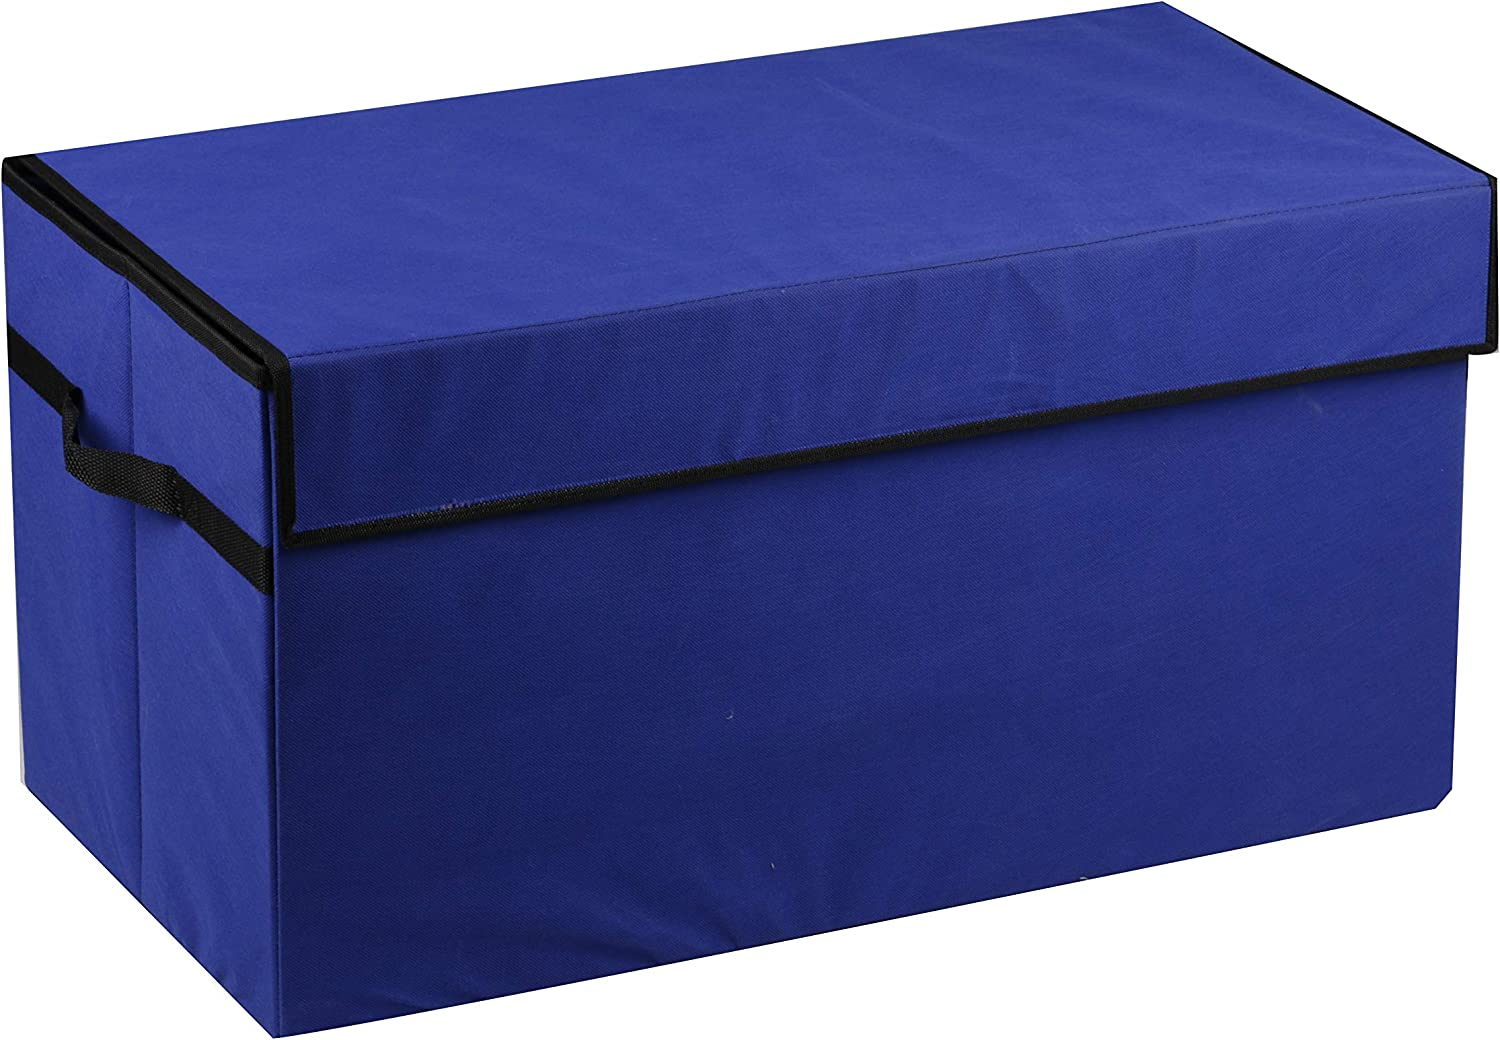 Prorighty Navy Blue Toy Organizer Flip-Top LID 30inch Large Organizer for Girl or Boy Gifts Container Multi-use Nursery Laundry